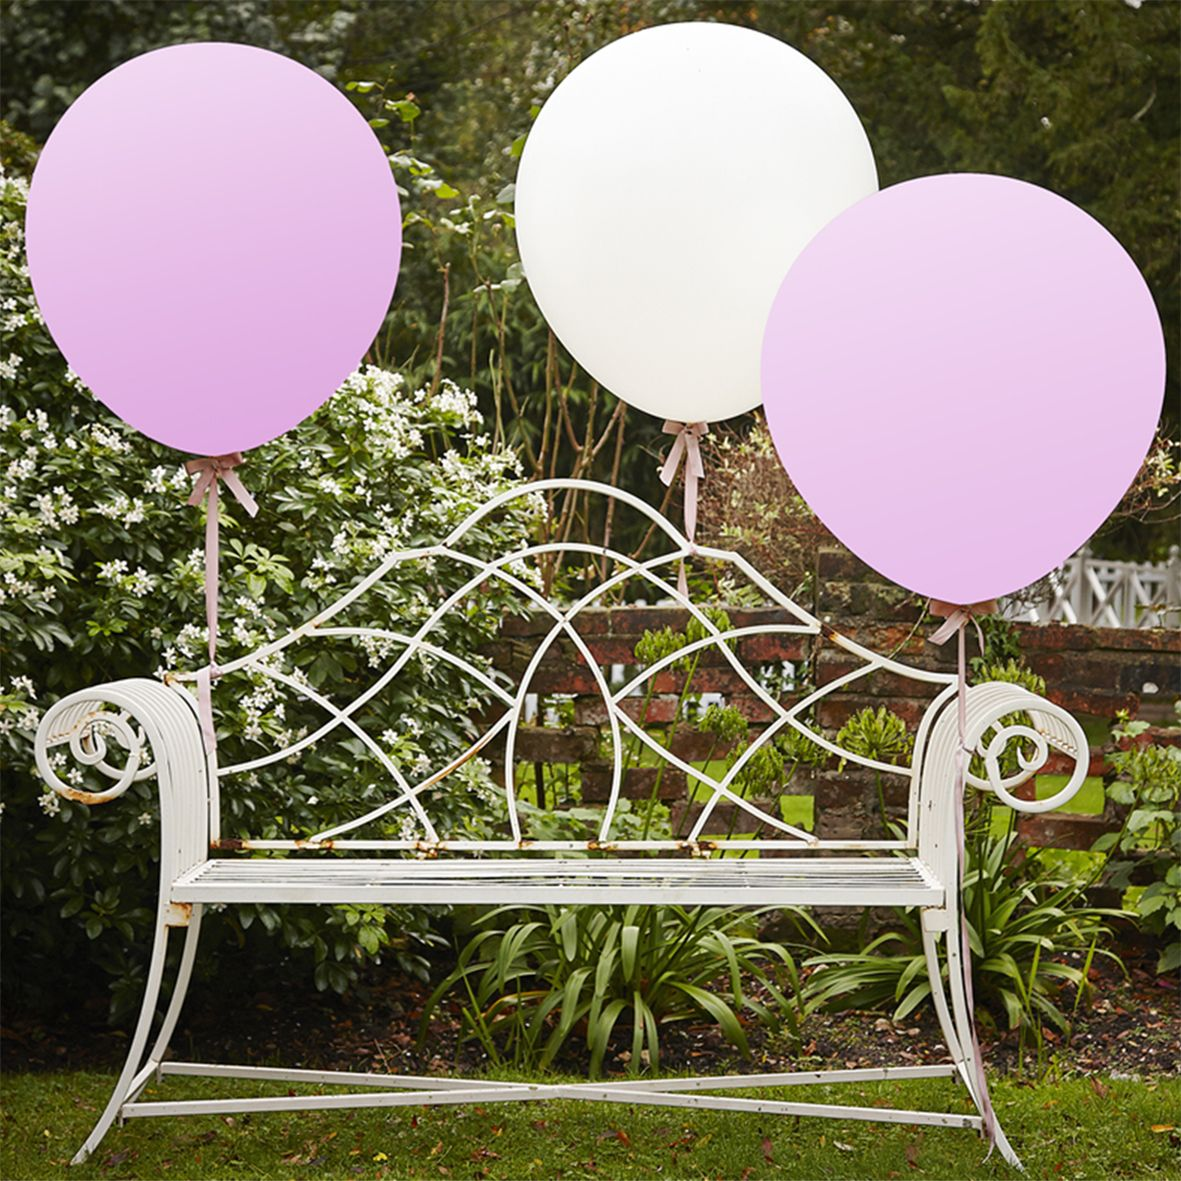 Feature Wedding & Engagement Balloons category image